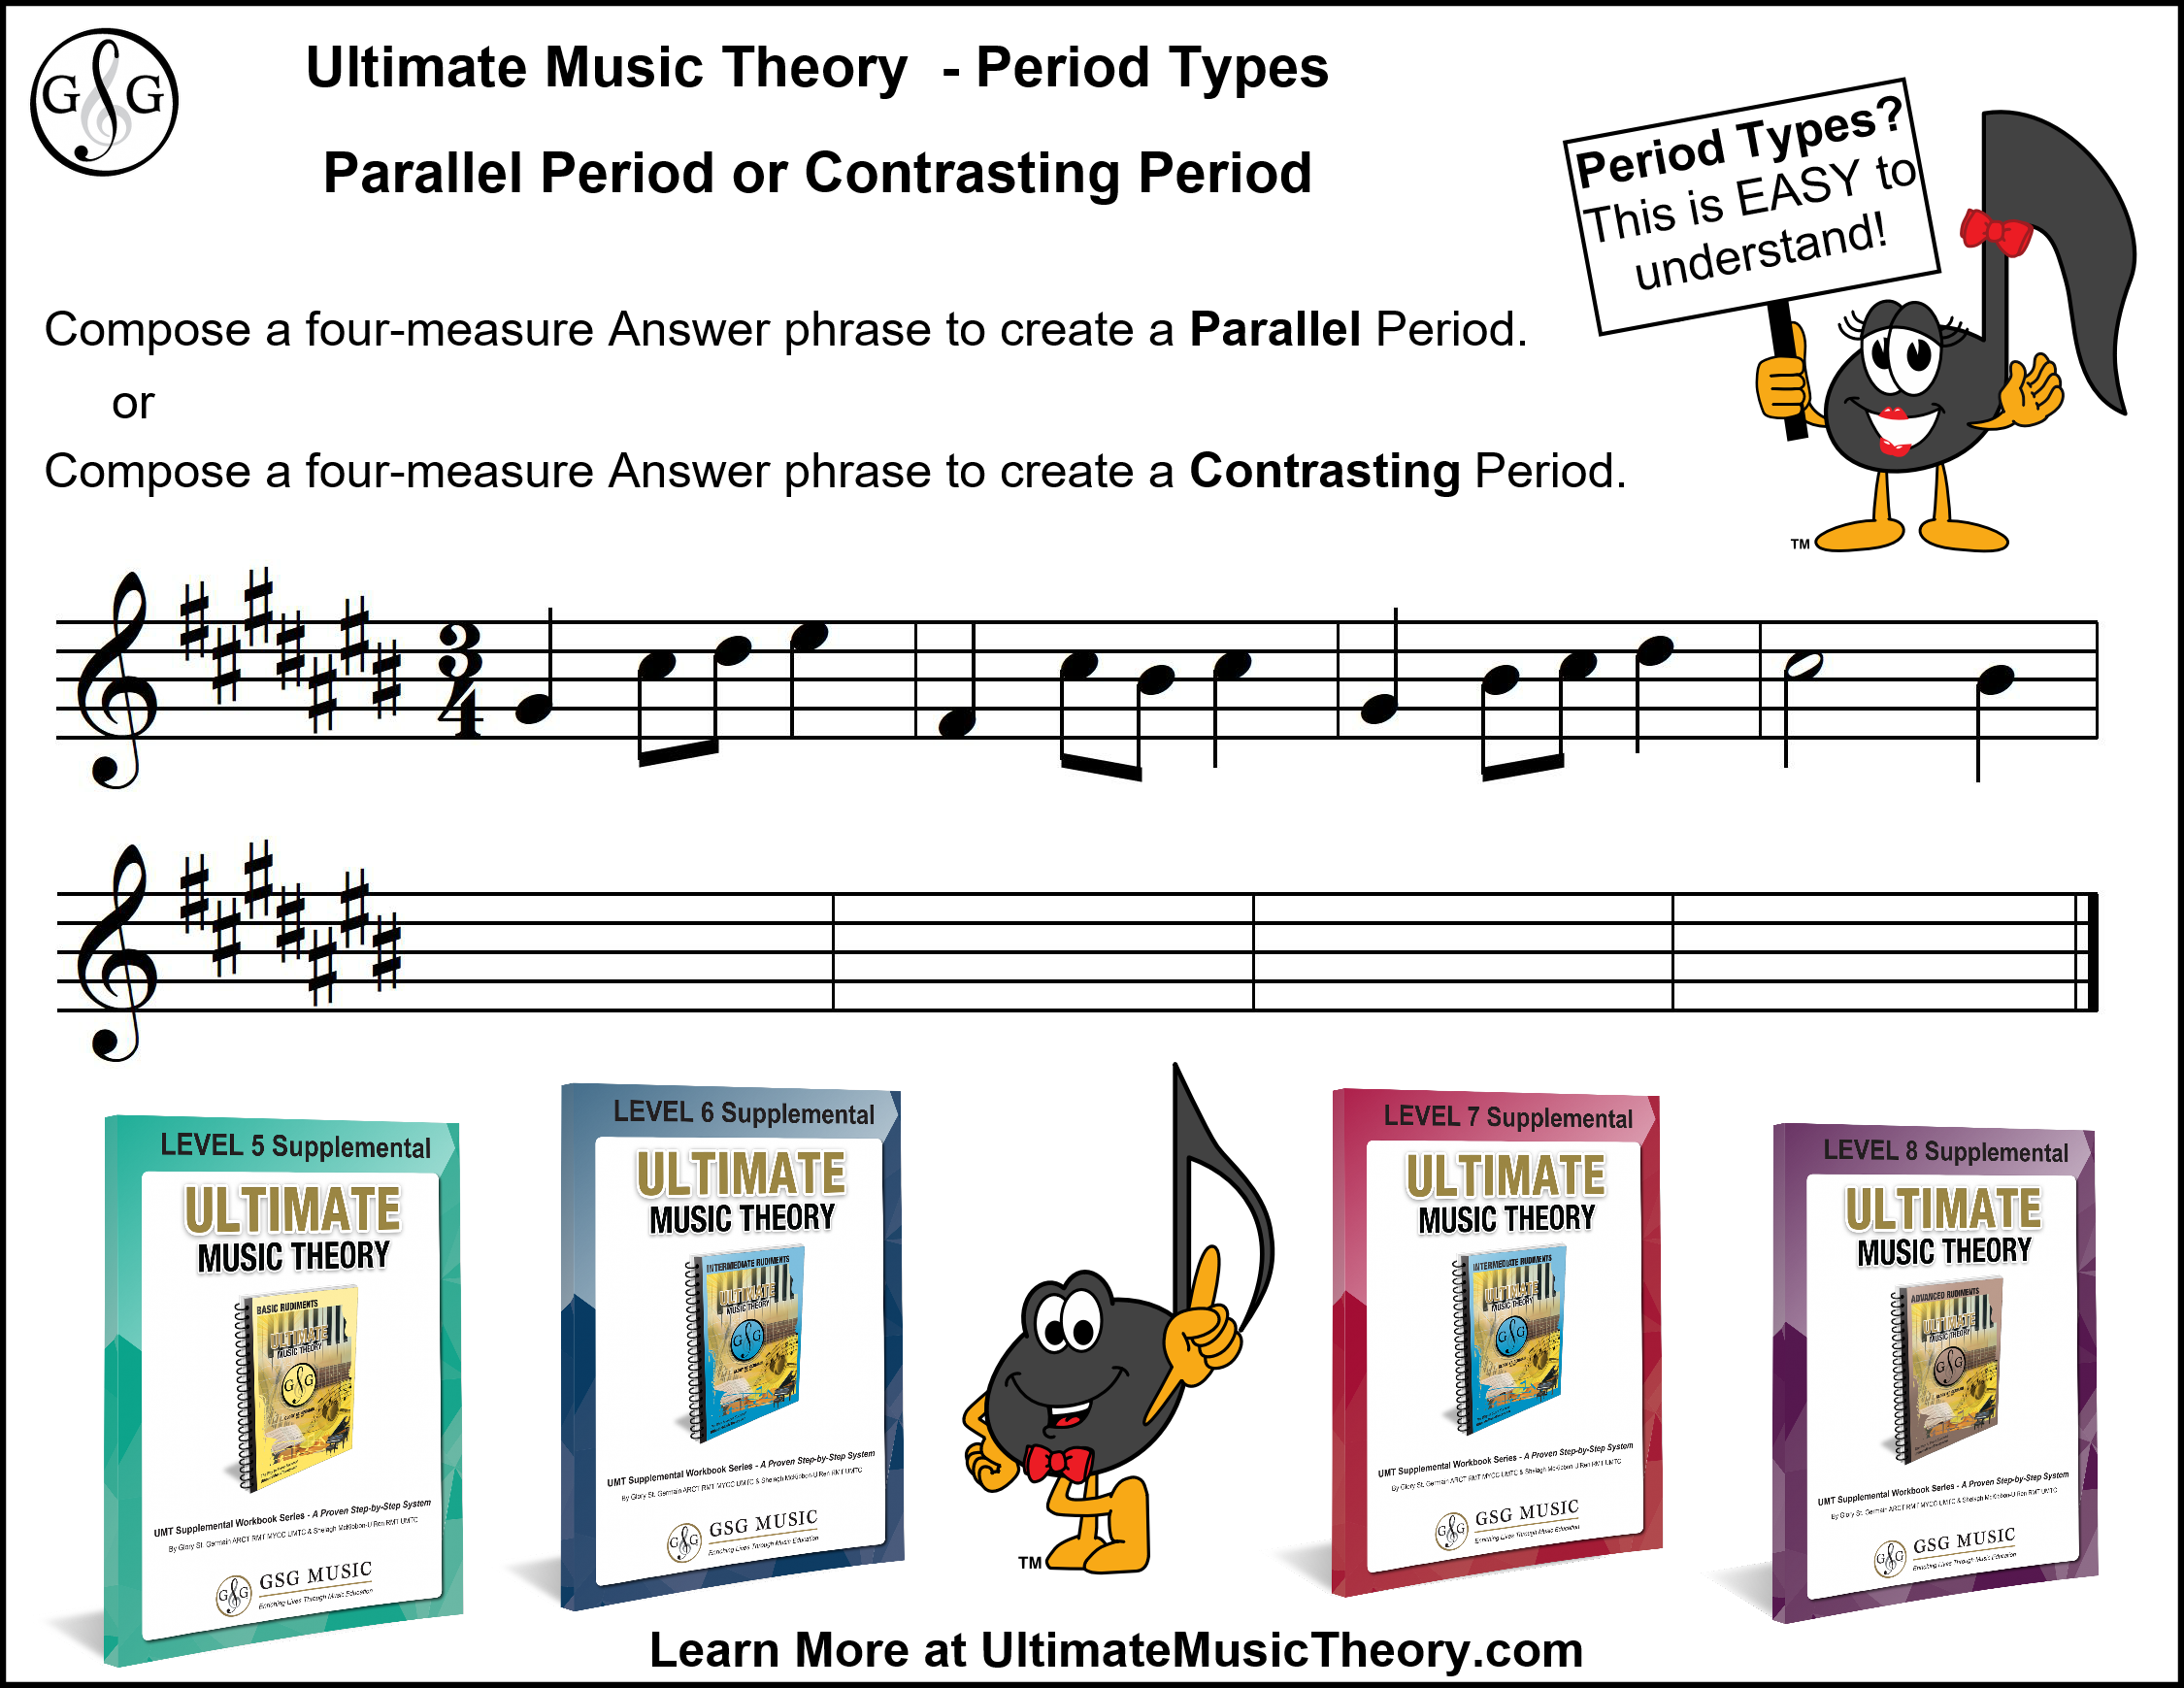 Ultimate Music Theory - Parallel or Contrasting